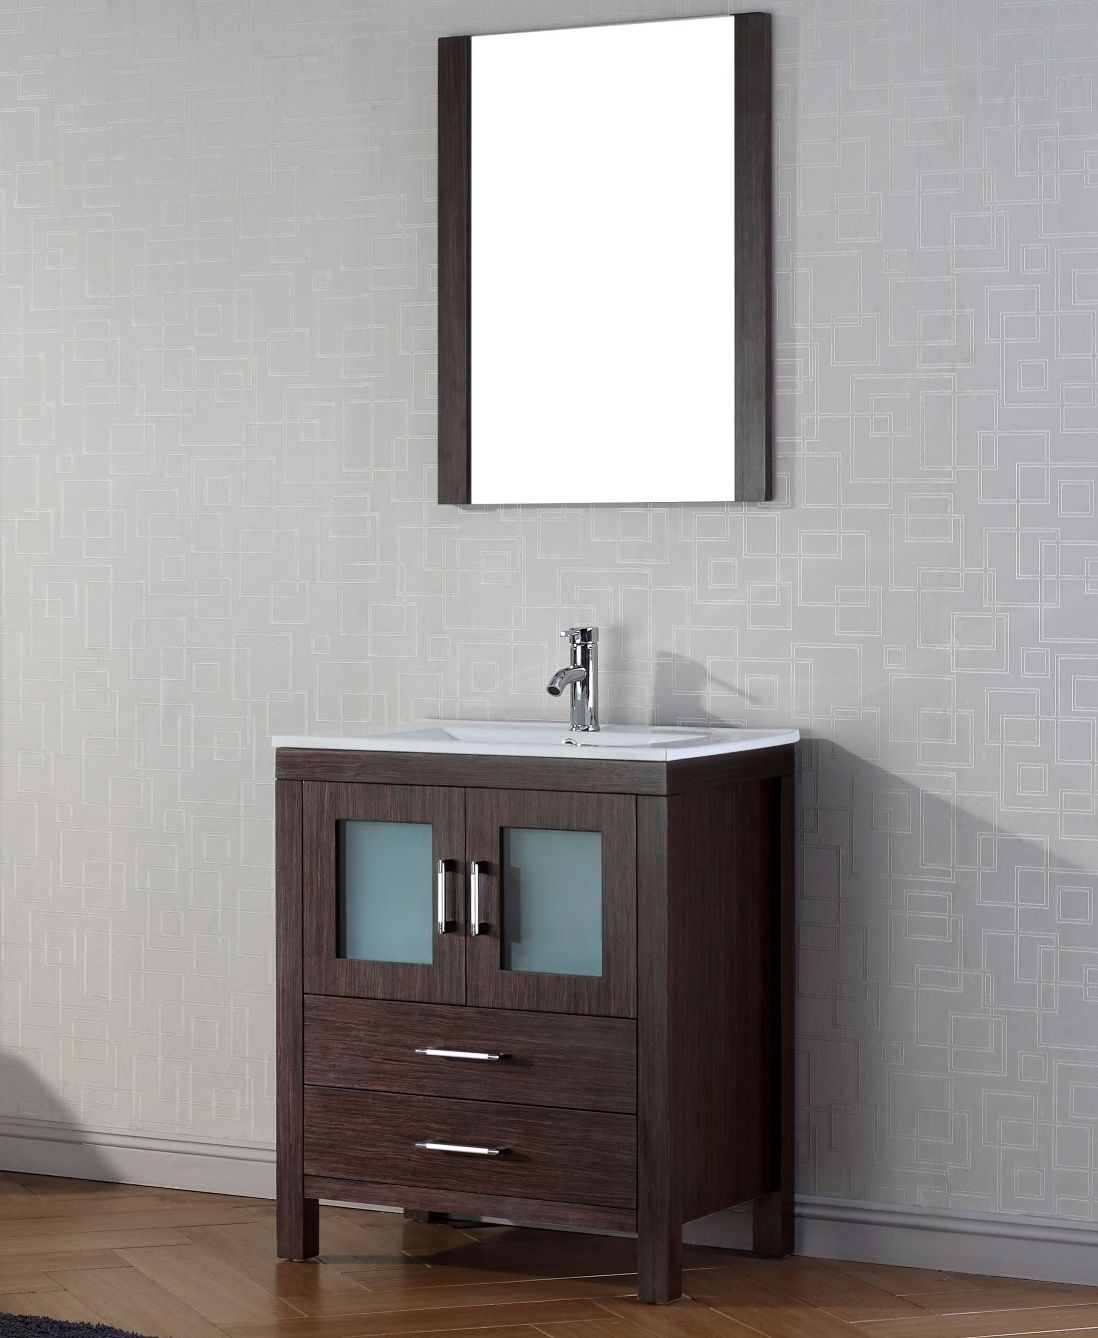 Abodo 28 Inch Single Sink Bathroom Vanity Espresso Finish Bathroom Vanity Single Bathroom Vanity Vanity Set With Mirror